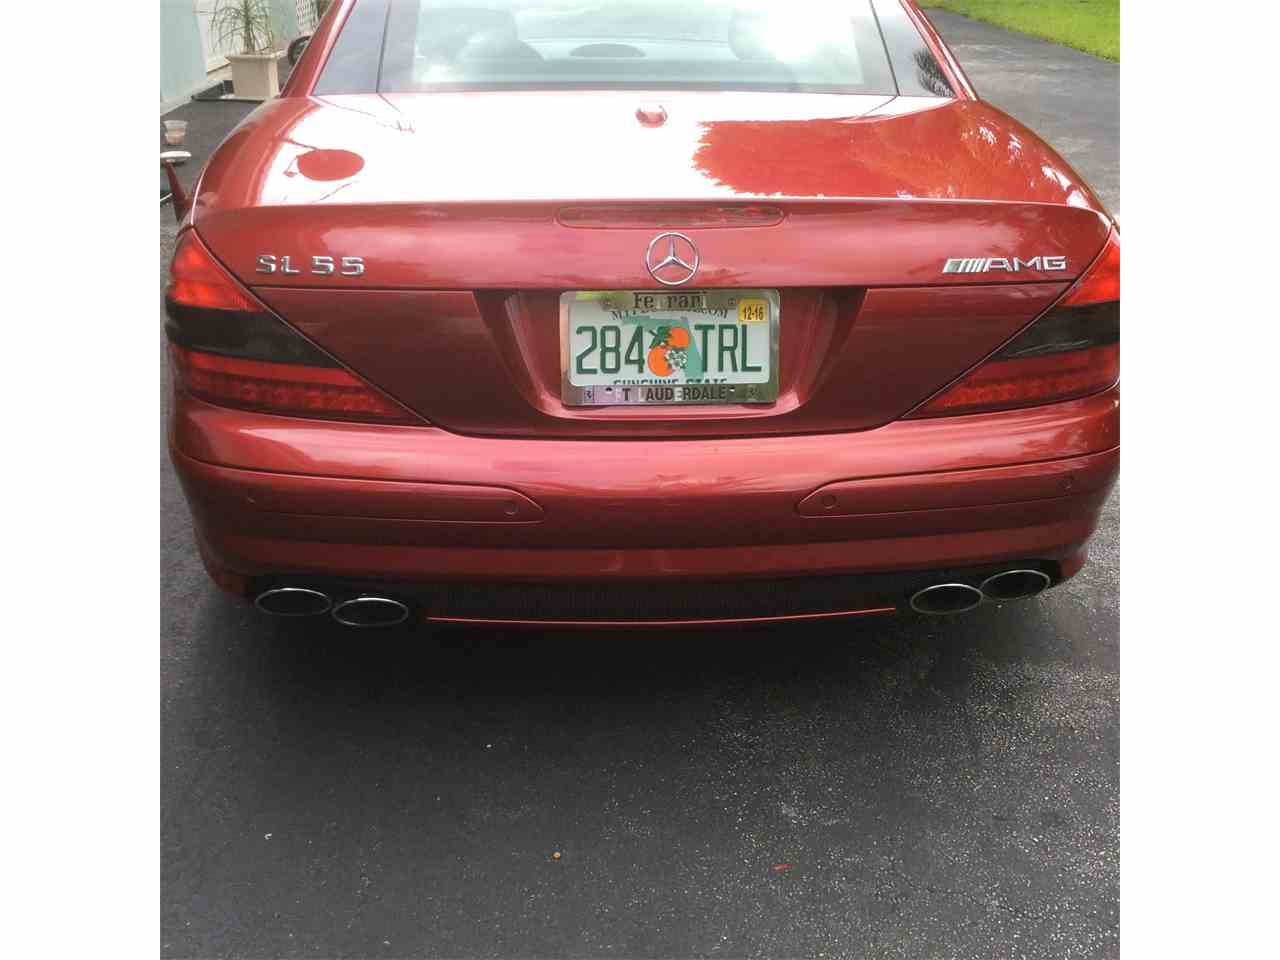 Large Picture of '06 Mercedes-Benz SL55 located in Miami Florida - $43,000.00 - JPMD